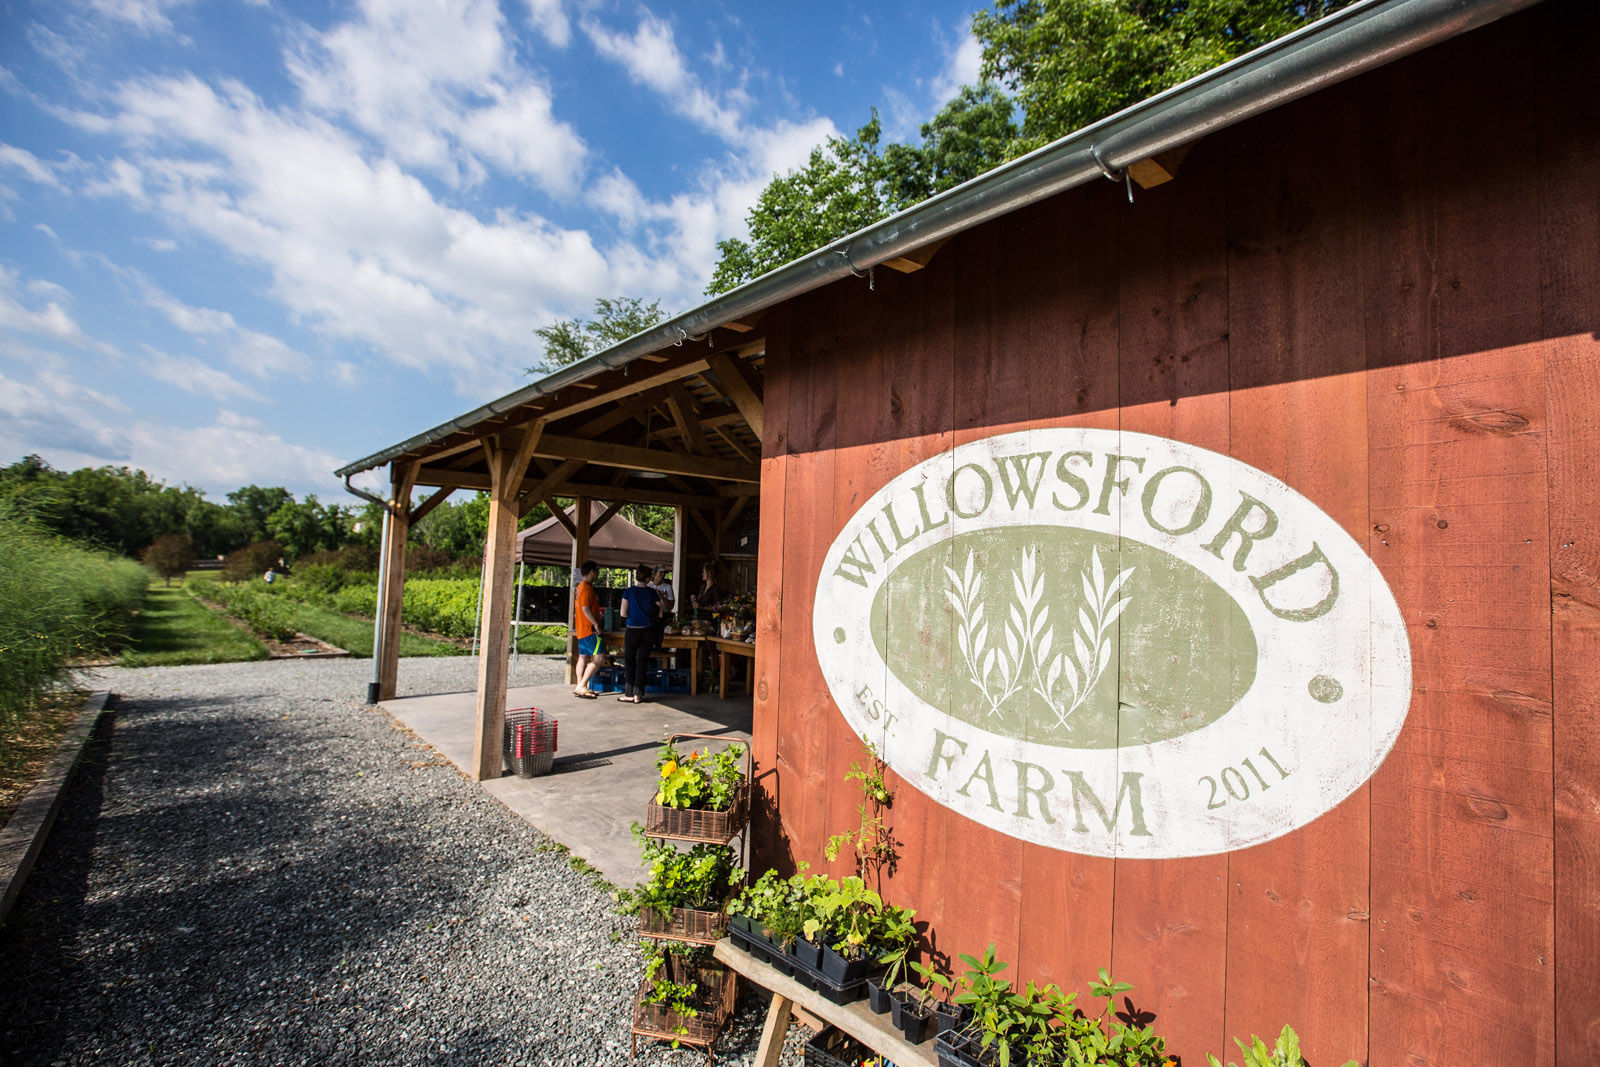 In addition to the 2,000 acres of open space, Willowsford also includes a 300-acre working farm and farm-to-table culinary program. (Courtesy Willowsford)